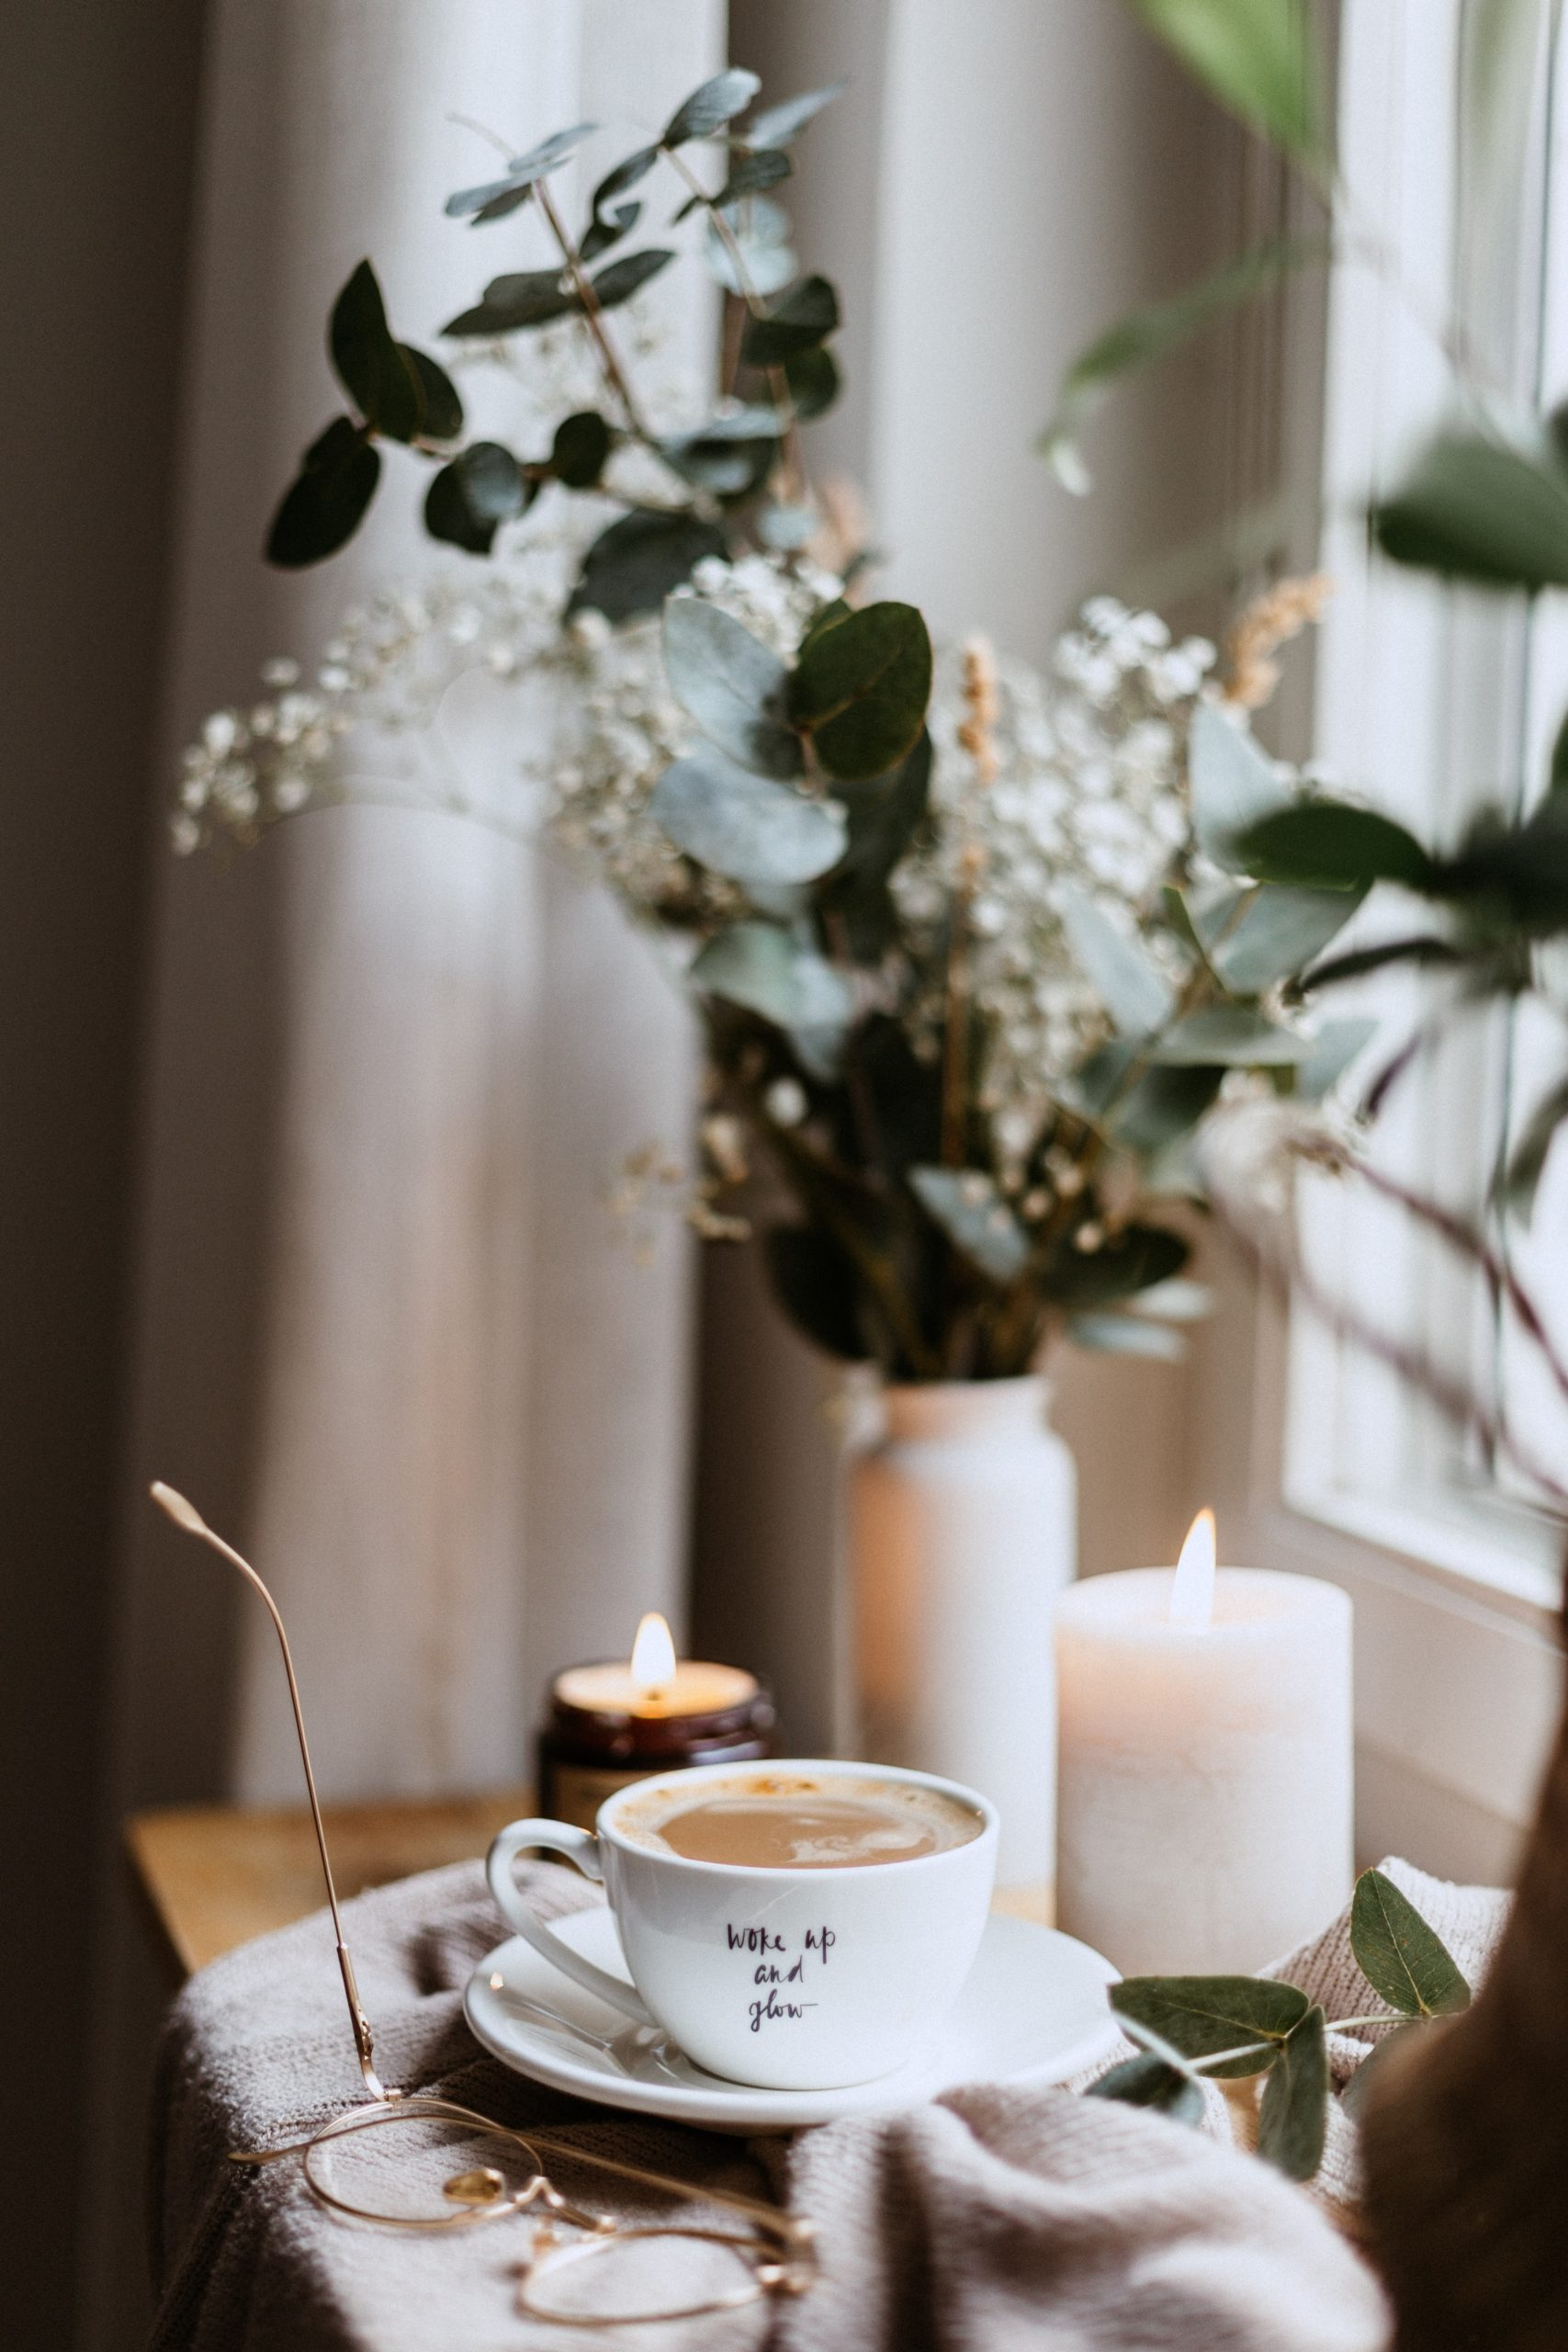 coffee and flowers / image from usnplash